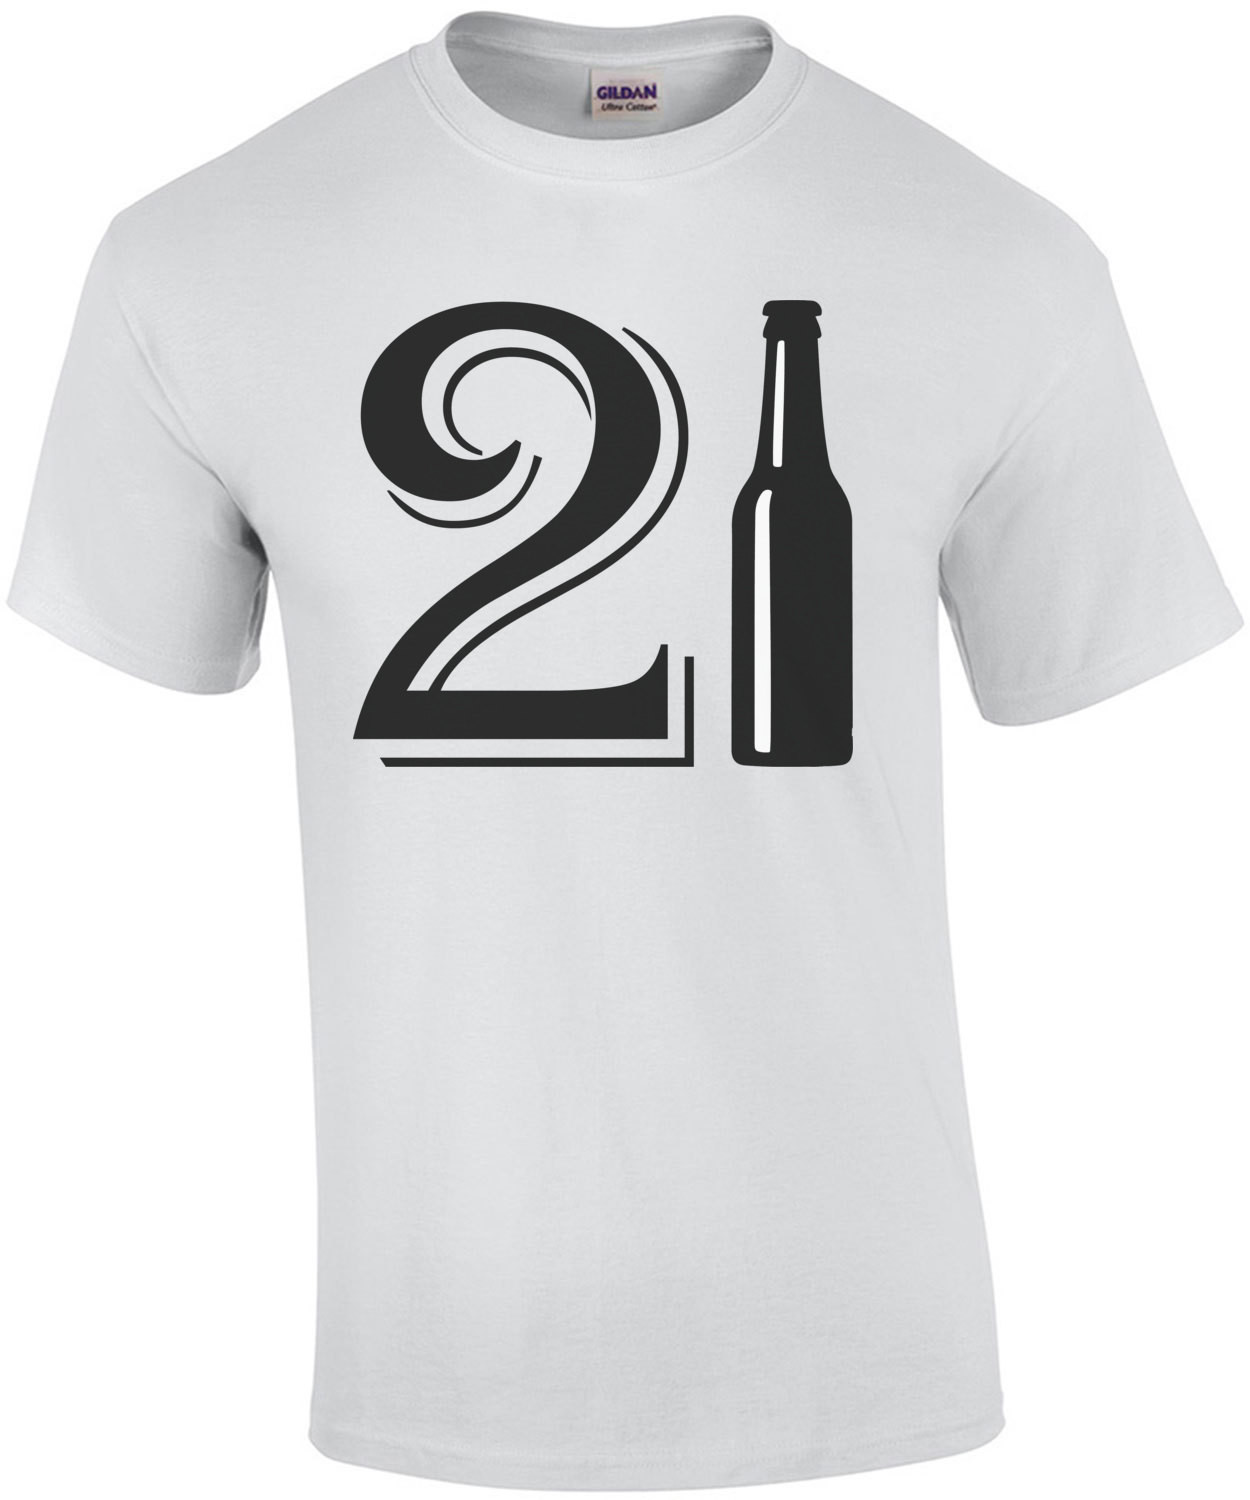 21 Birthday - beer bottle - happy 21 birthday t-shirt